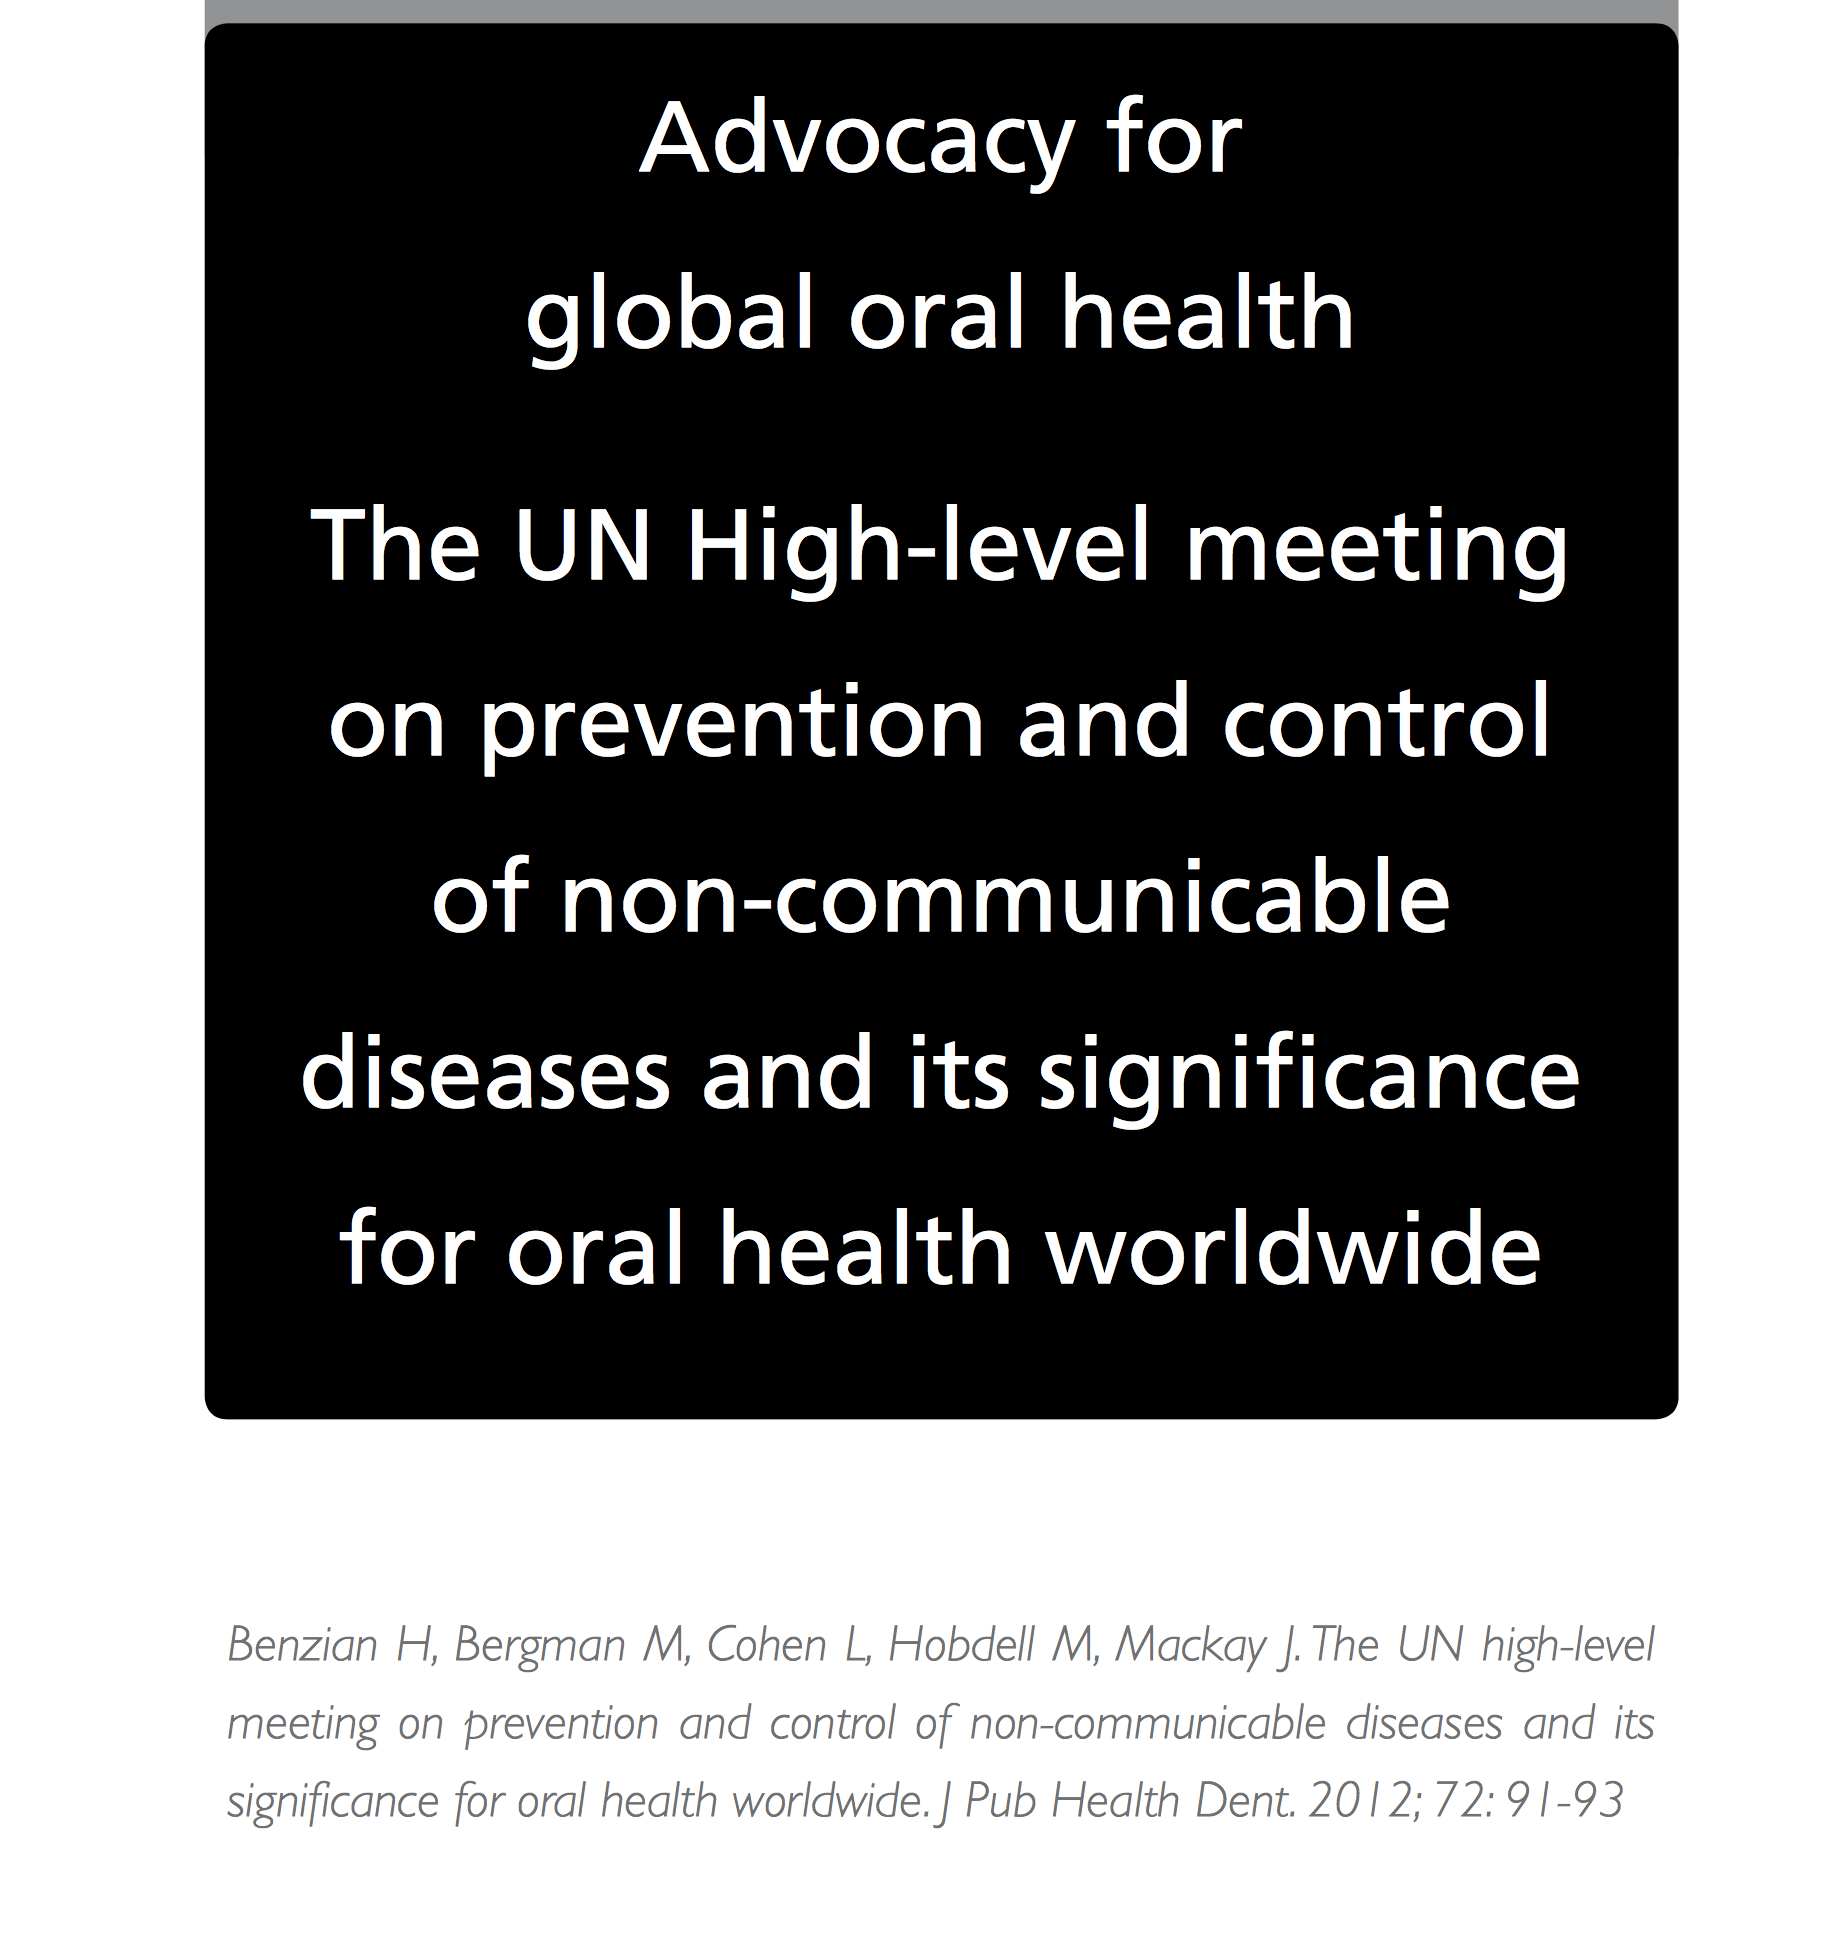 advocacy for global oral health